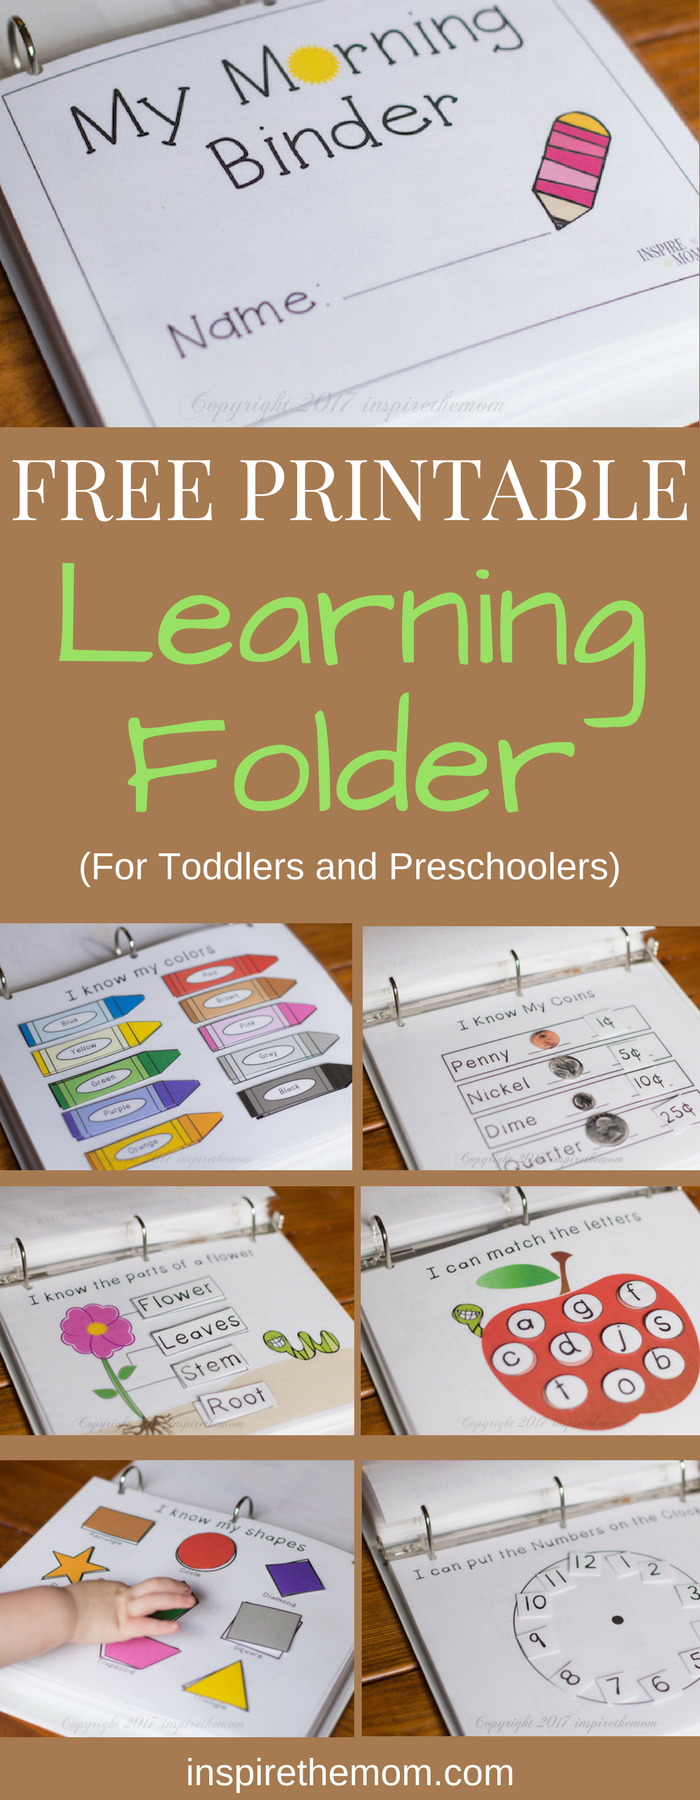 Whether you are teaching your prechooler at home or working with them in preparation for school, here is a free printable learning